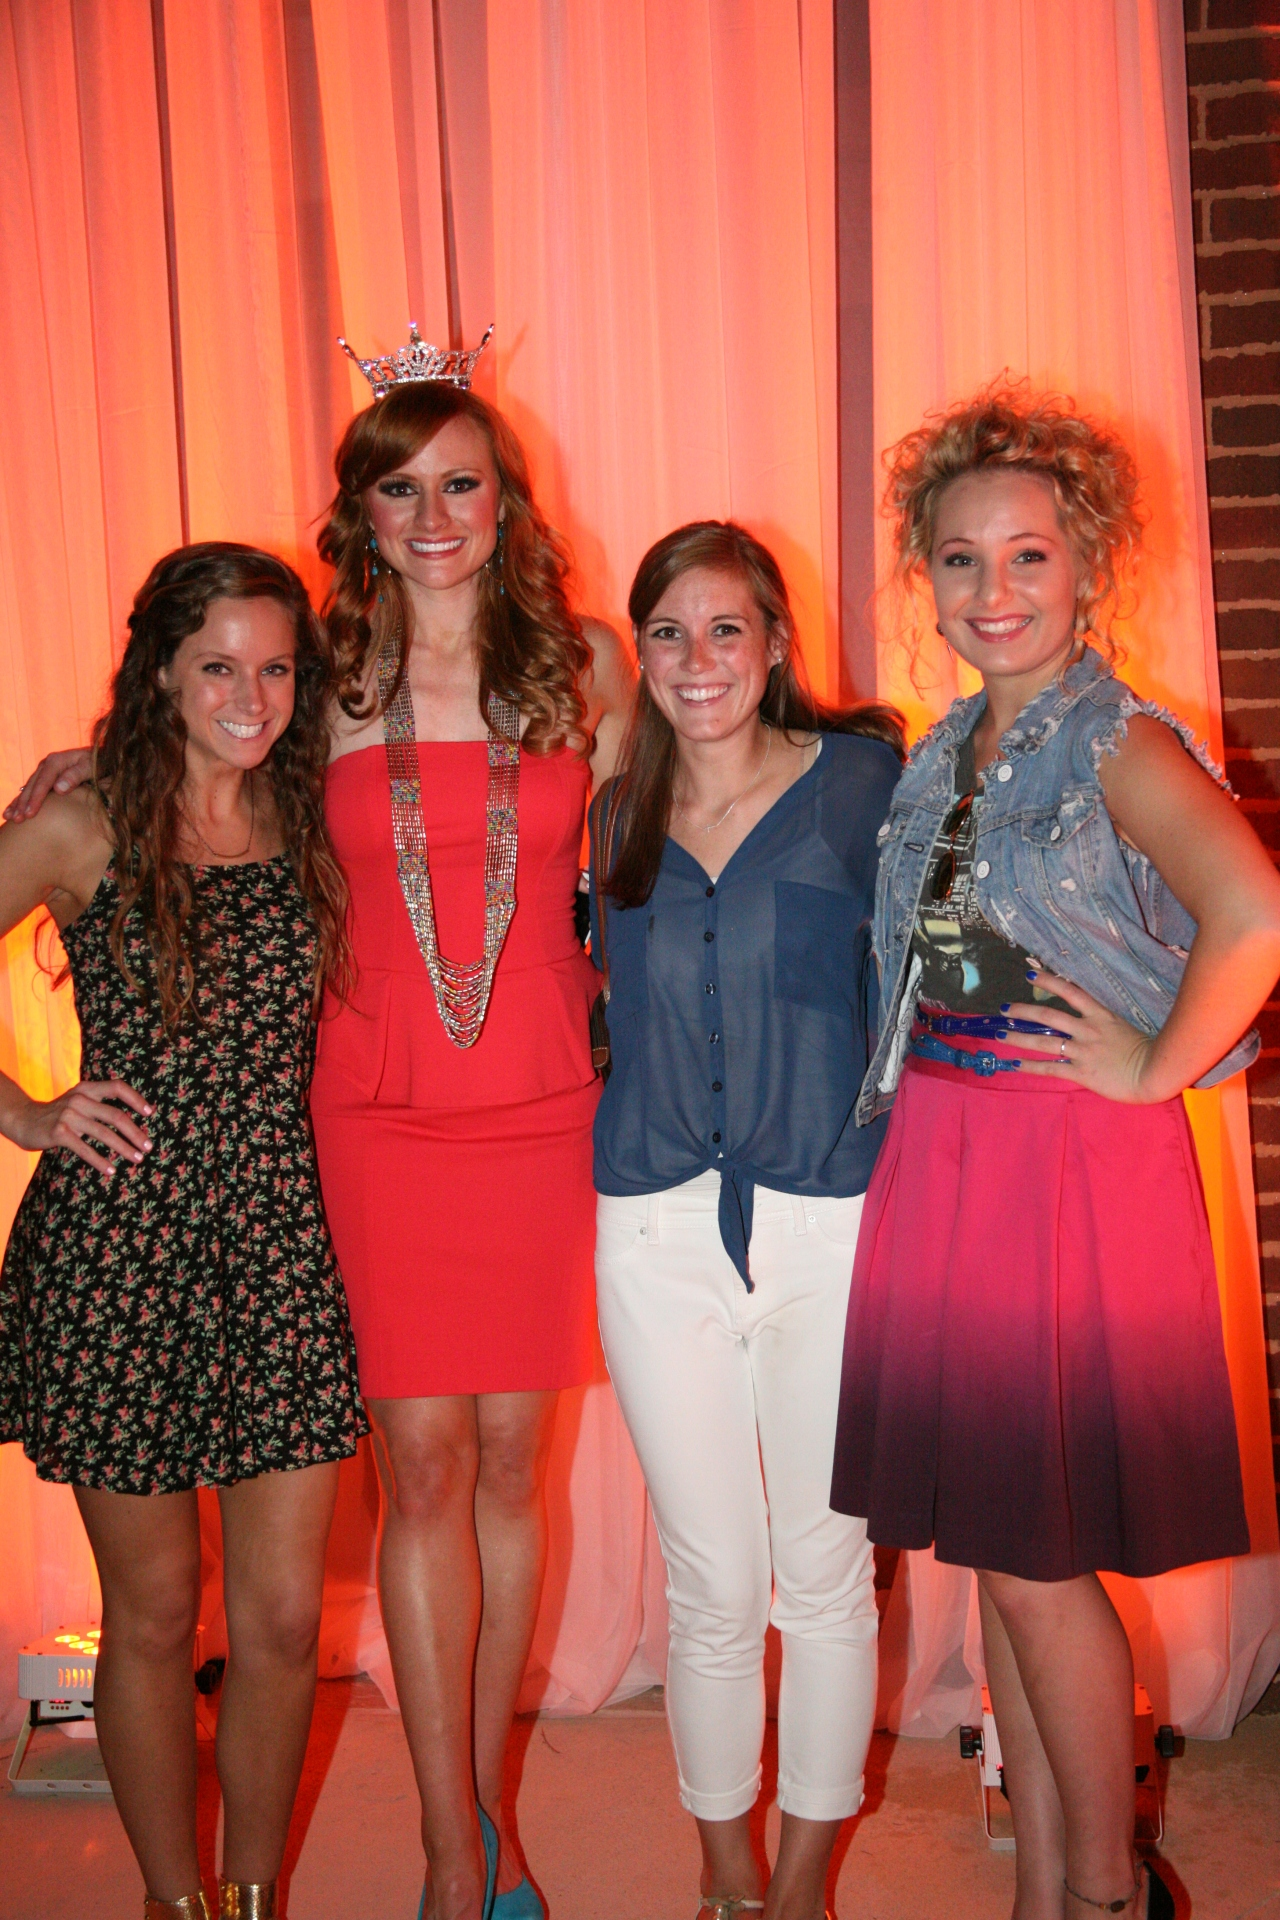 Miss Alabama 2012 winner, Anna Laura Bryan, Gus Mayer interns, and the VIP at the Sunset in Miami fashion show.